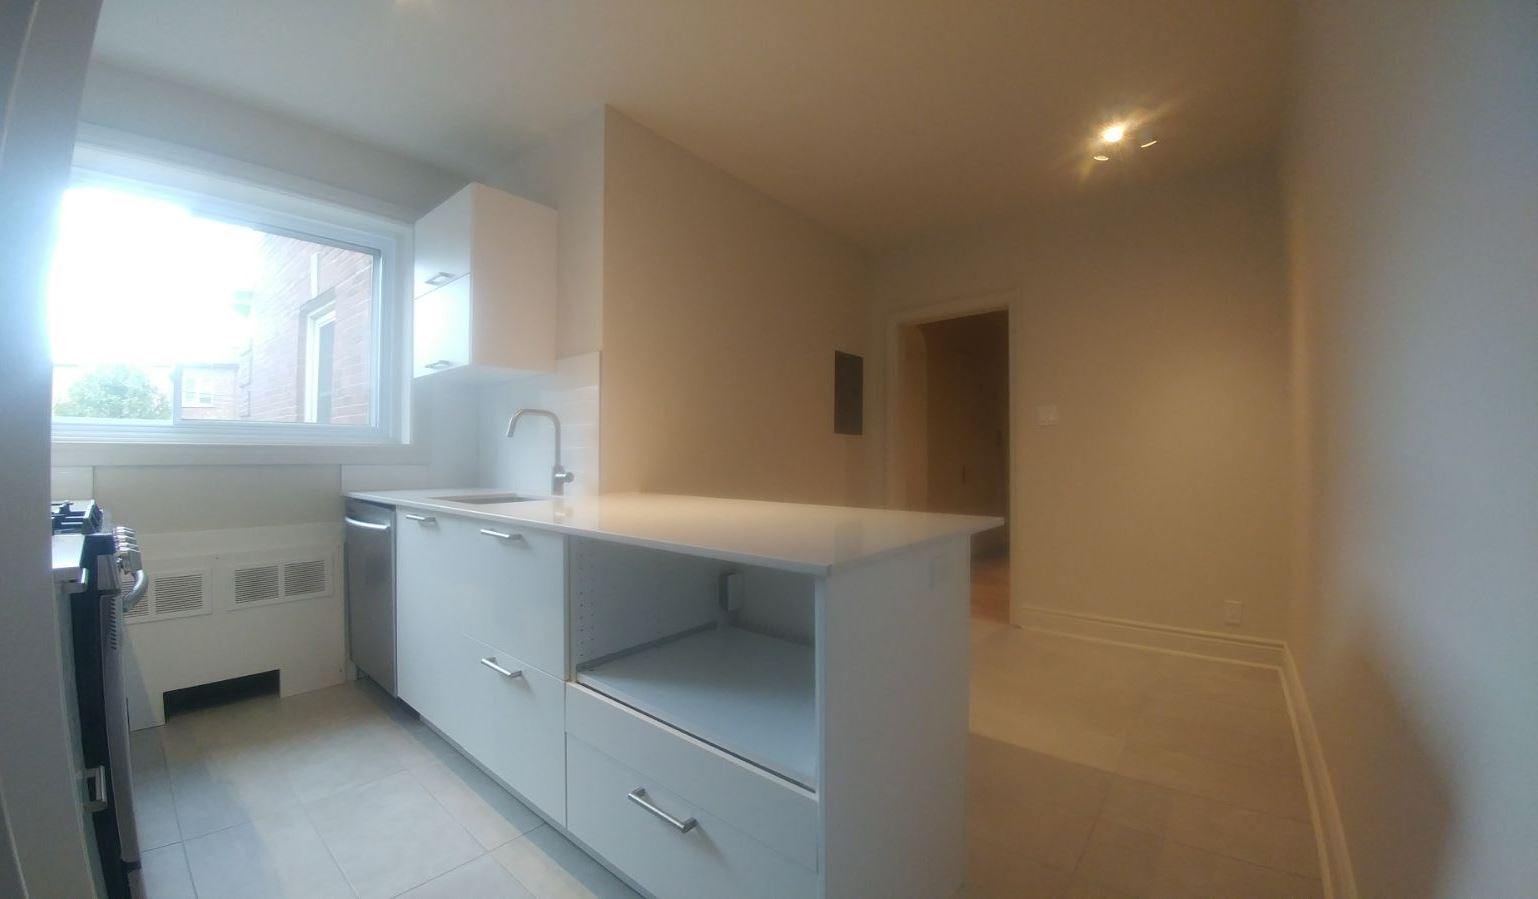 2 bedroom Apartments for rent in Hampstead at 1-2 Ellerdale - Photo 12 - RentersPages – L9523